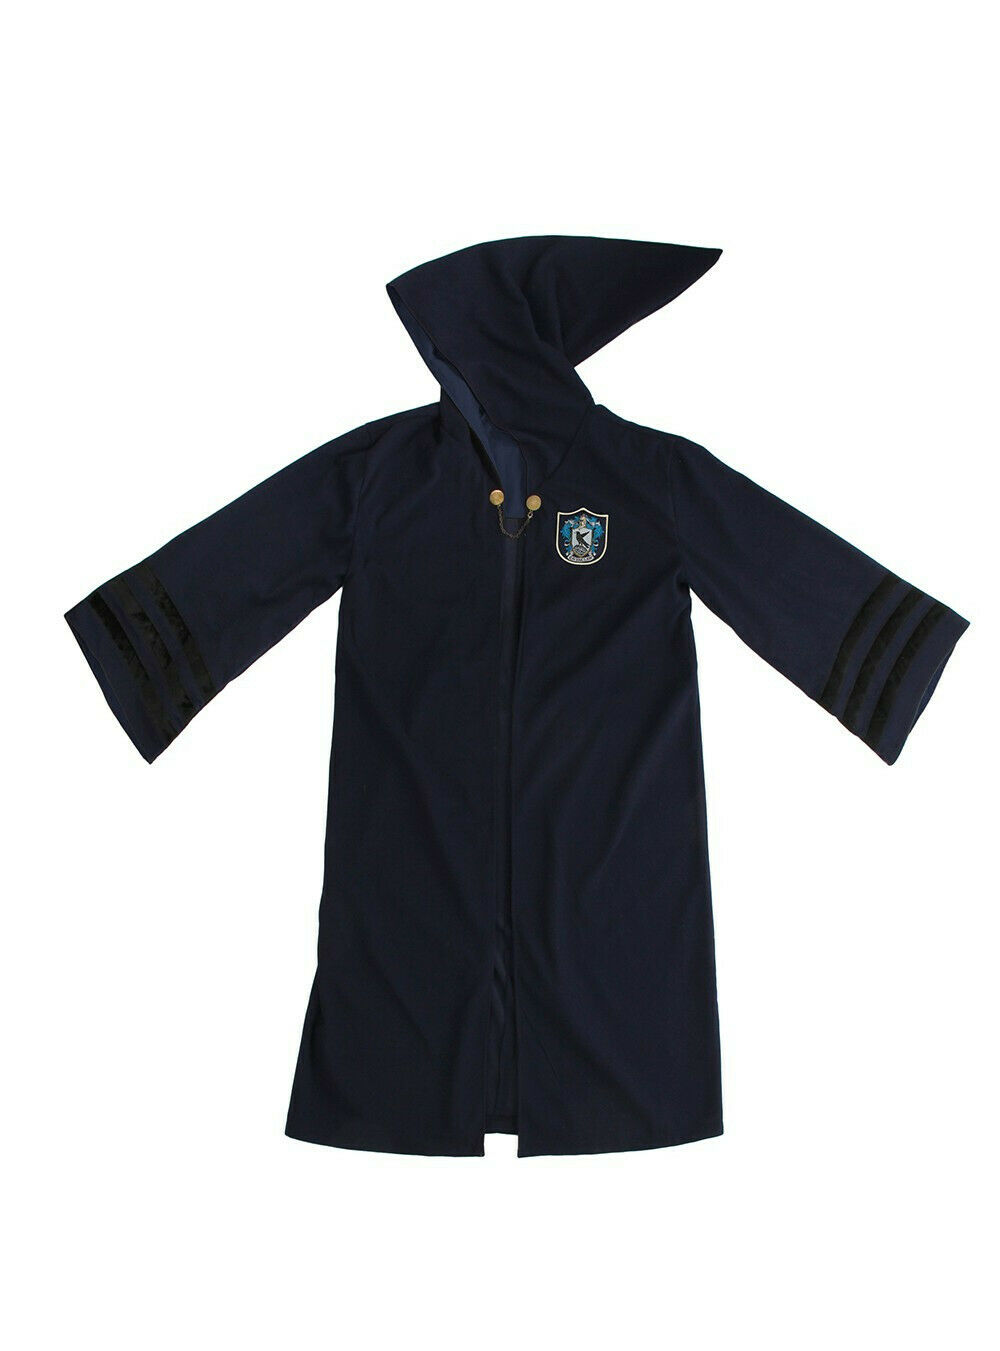 FANTASTIC BEASTS - Ravenclaw Vintage Hogwarts Adult Robe Replica (Elope)  NEW